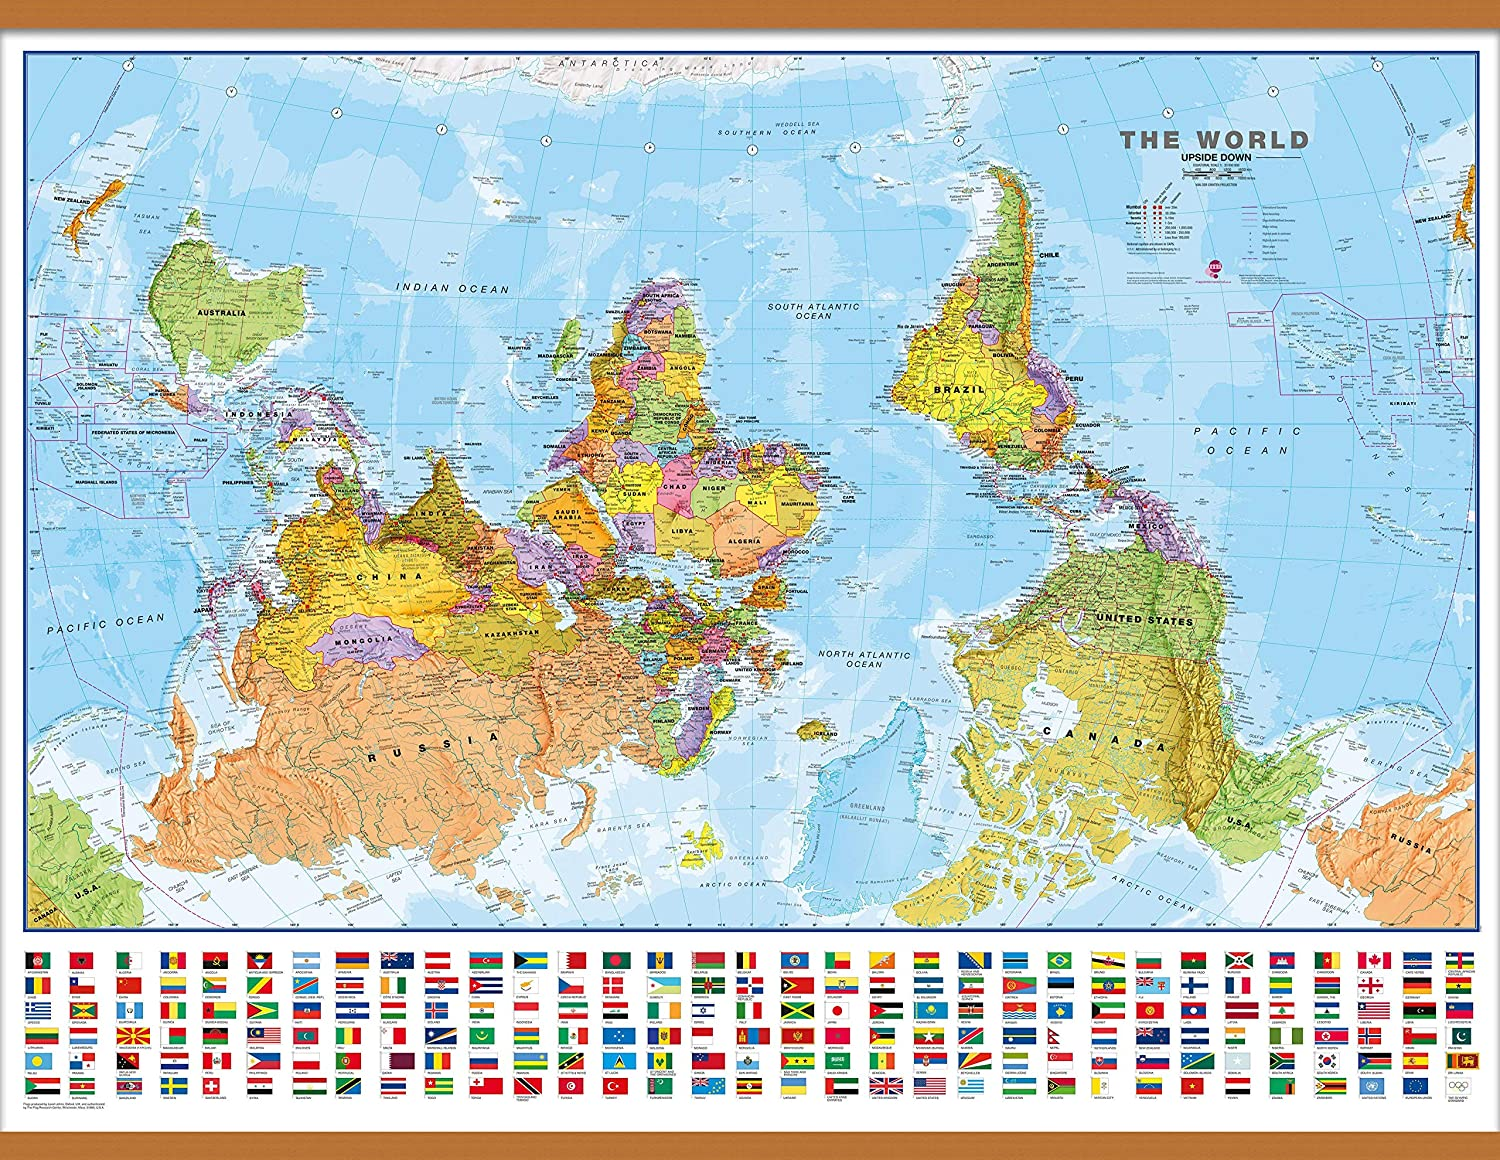 the world map upside down Amazon Com Maps International Large Upside Down Political World